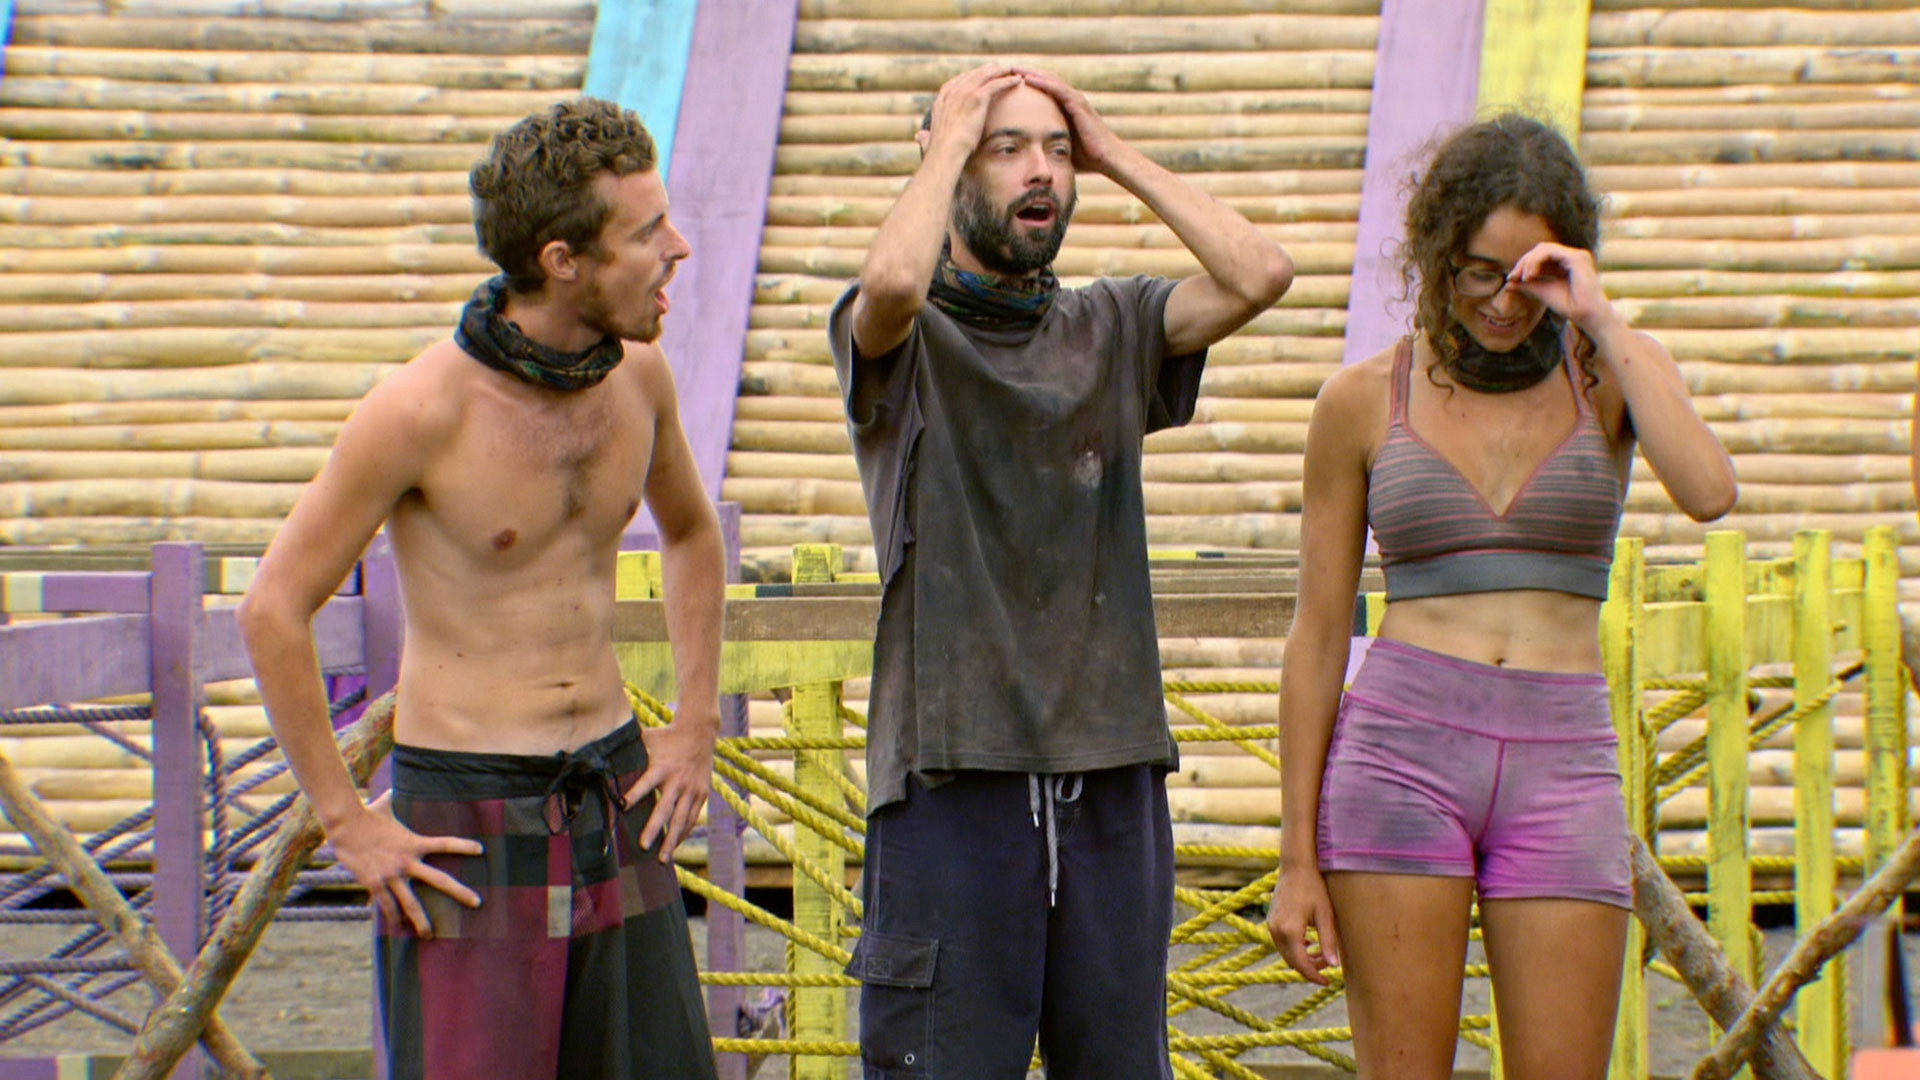 In addition to winning Immunity, the first to finish will score a delicious Reward entree.